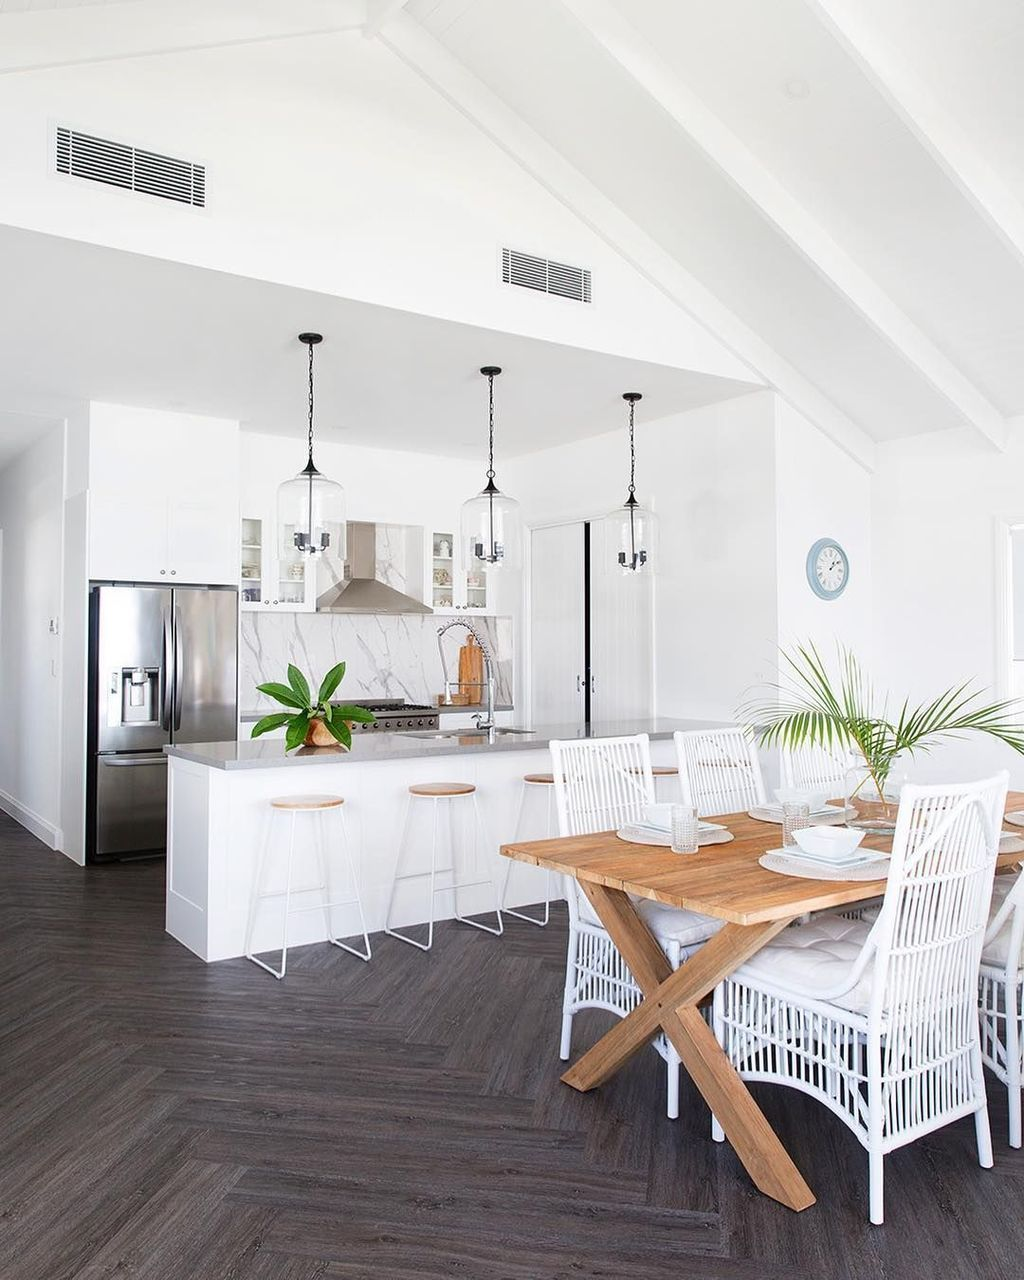 20 Tropical Dining Room Ideas For 2018: 20+ Elegant Coastal Dining Room Design Ideas You Must Know